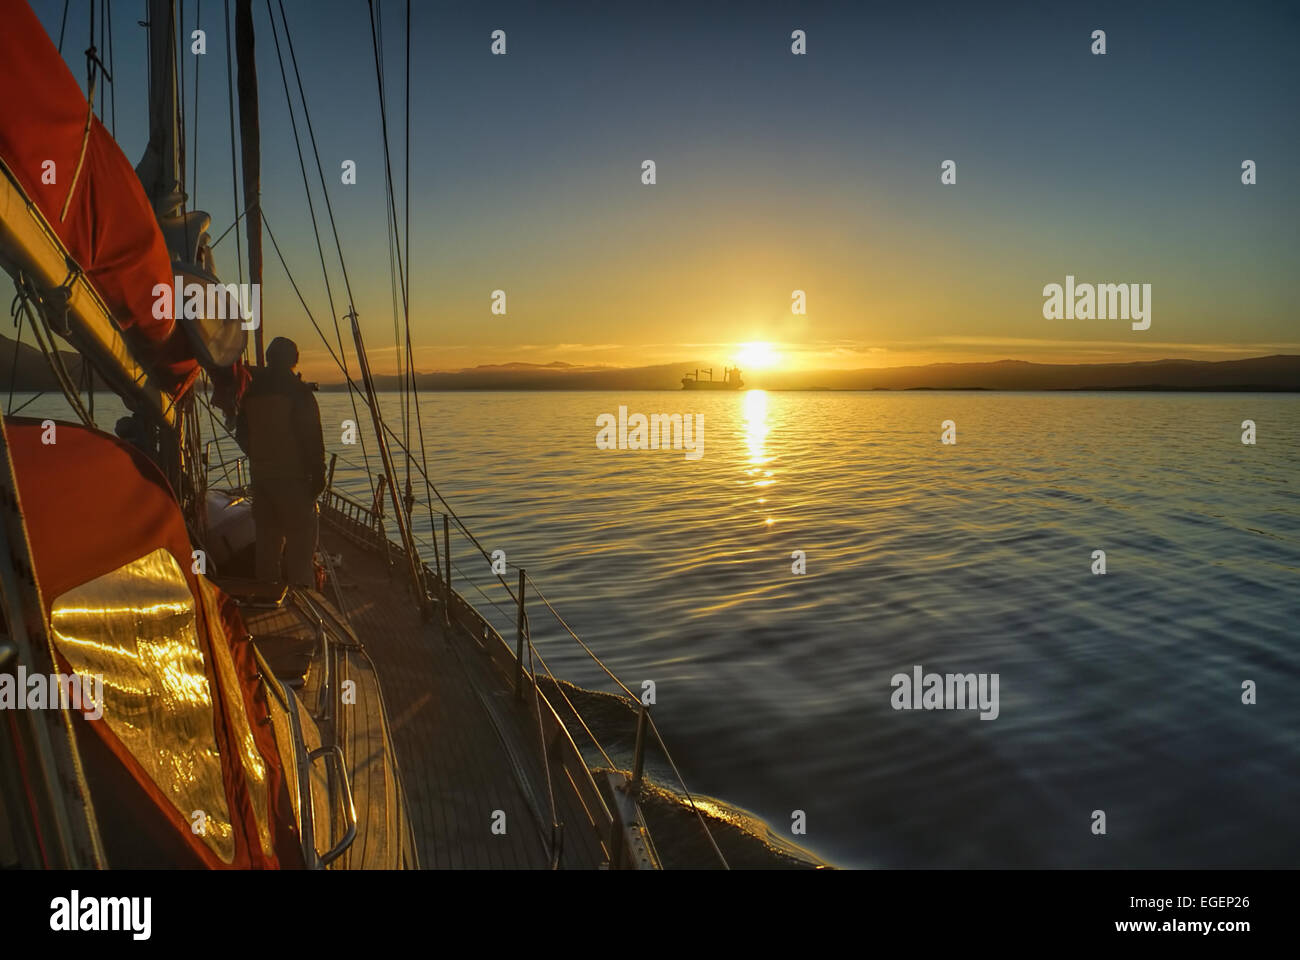 Scenic sunrise viewed from yacht over the coast of Chile in South America Stock Photo